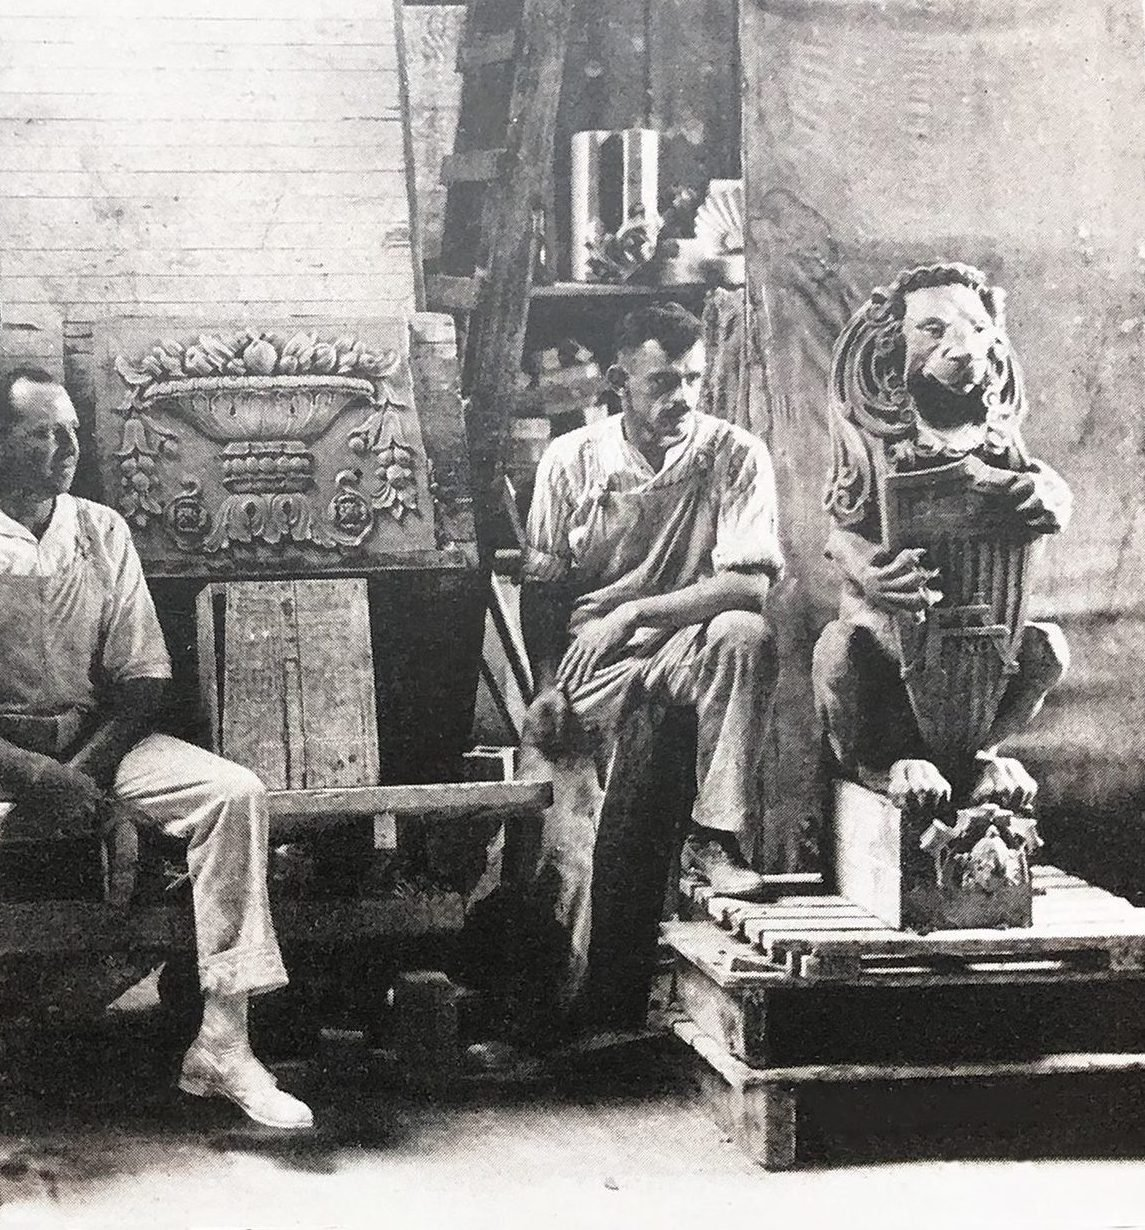 American Terra Cotta and Ceramic Company, historic photo, modeling room, 1921